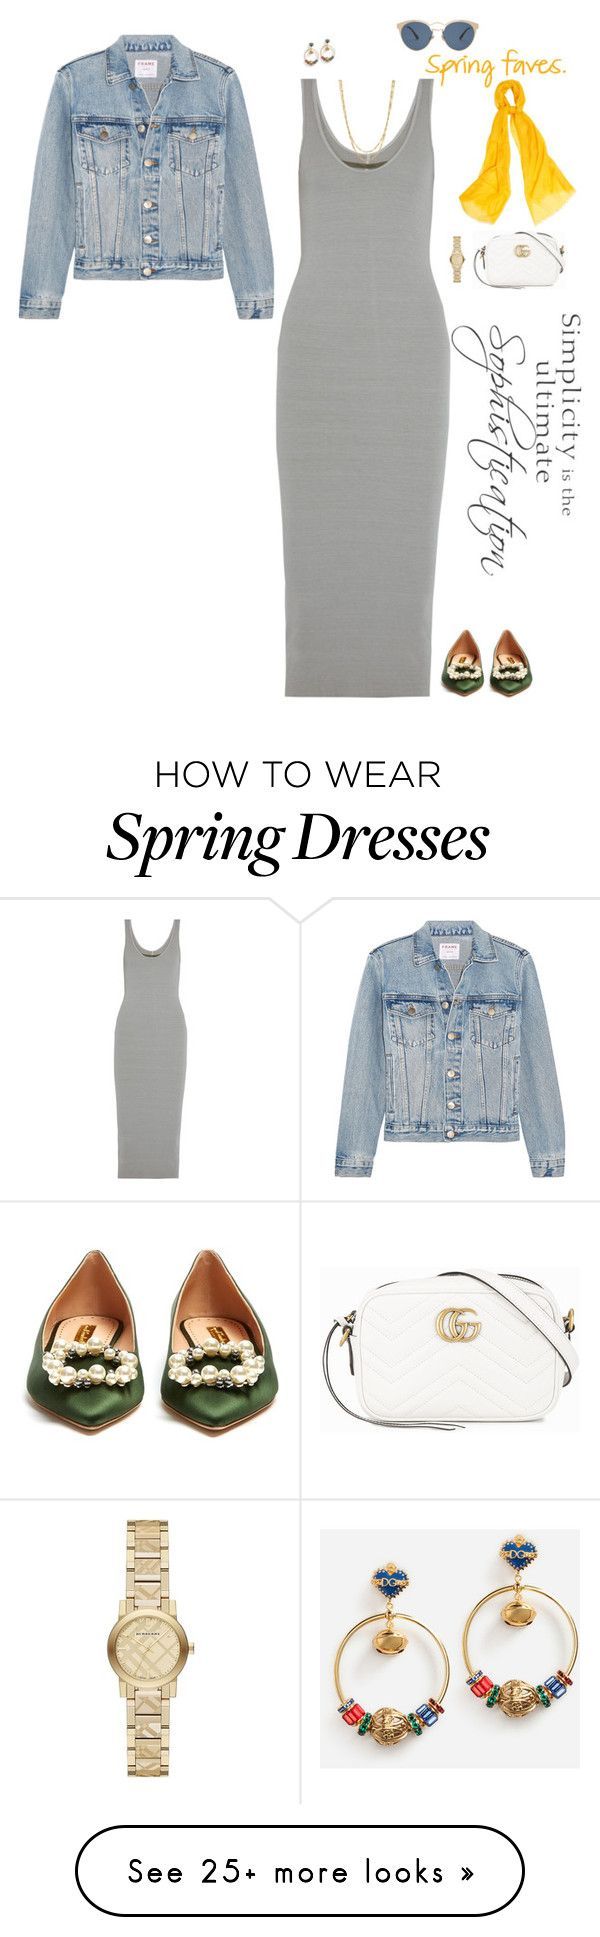 """""""Spring In The City"""" by jenily on Polyvore featuring Enza Costa, Rupert Sanderson, Frame, Gucci, Burberry, WtR, Dolce&Gabbana, WALL and Christian Dior"""